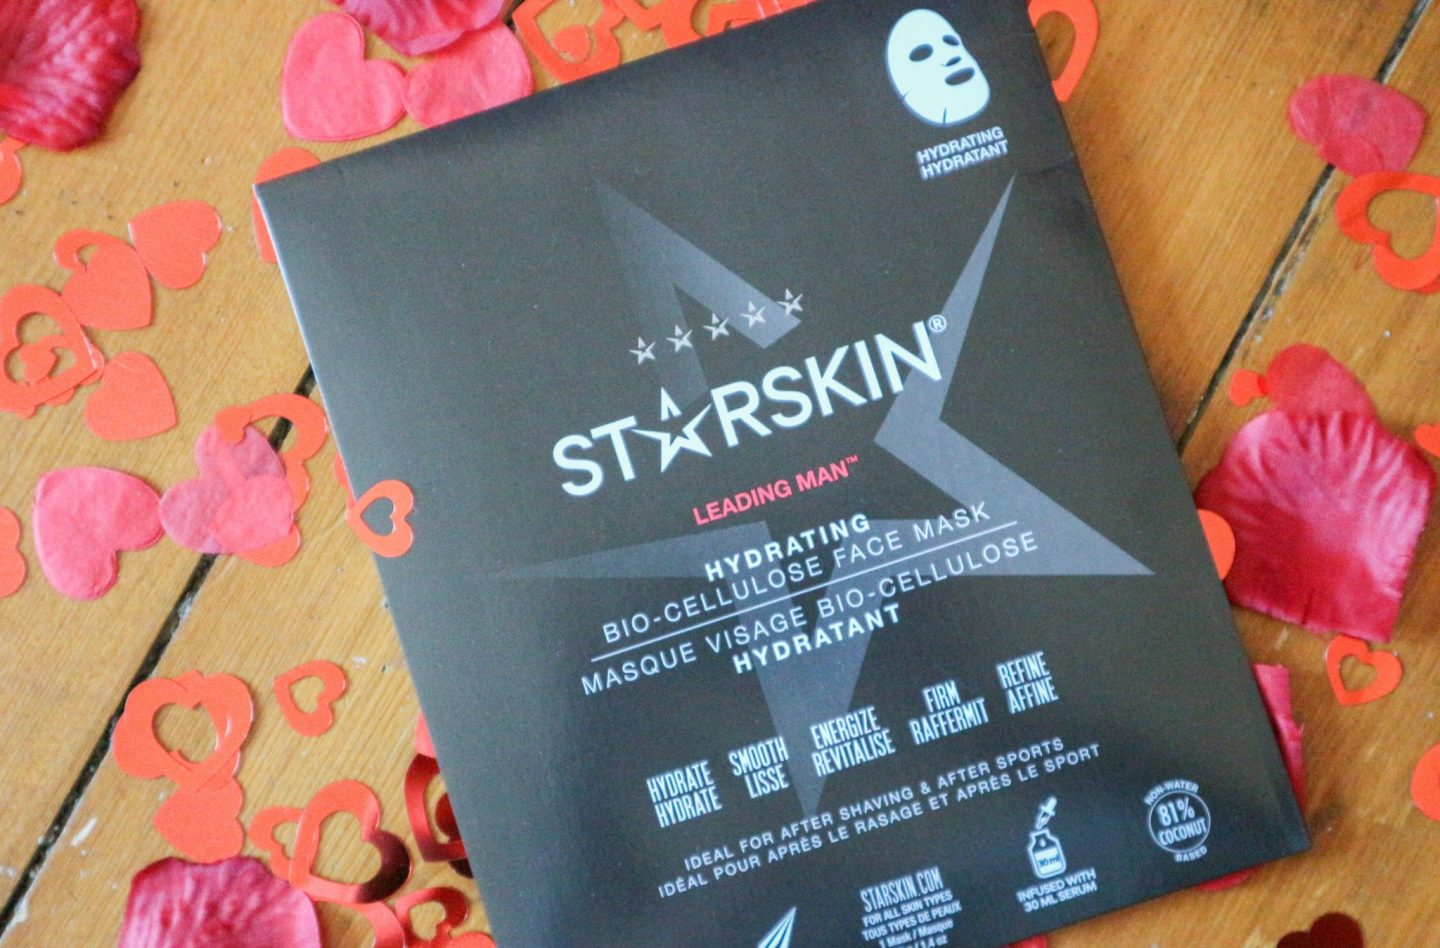 Starskin Leading Man Bio-Cellulose Mask